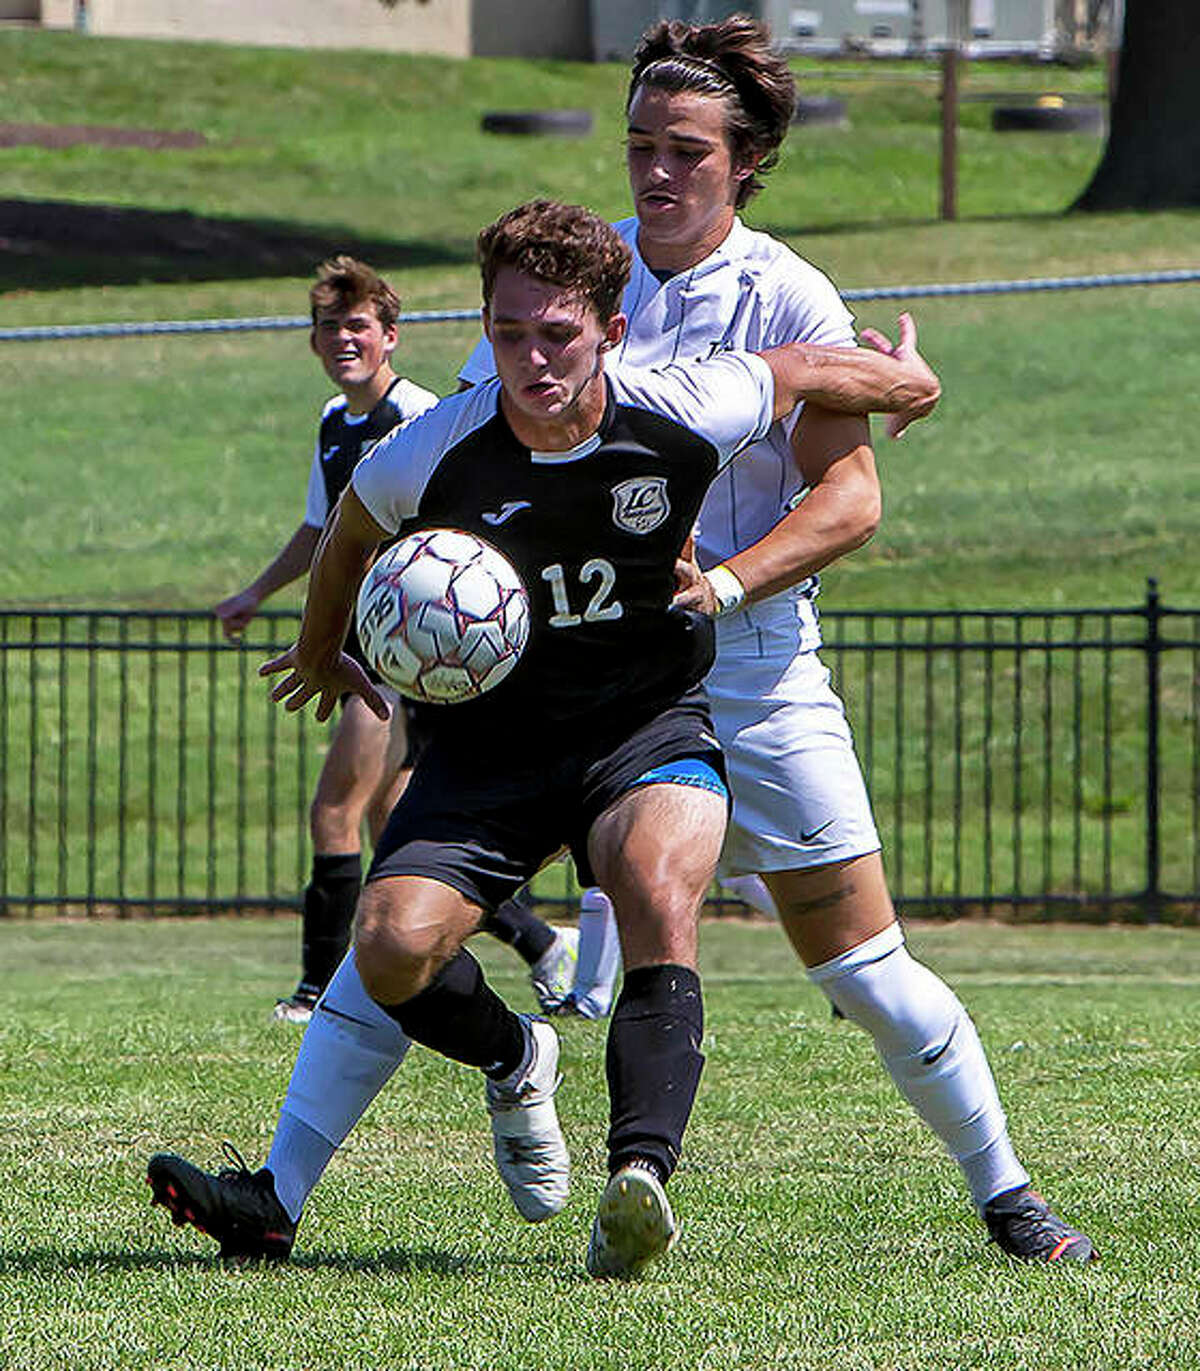 Lewis and Clark's Owen Sears (12) shields the ball from a Johnson County player Sunday at LCCC. Sears scored on a penalty kick for the Trailblazers, but they dropped their first game in three tries, 2-1.